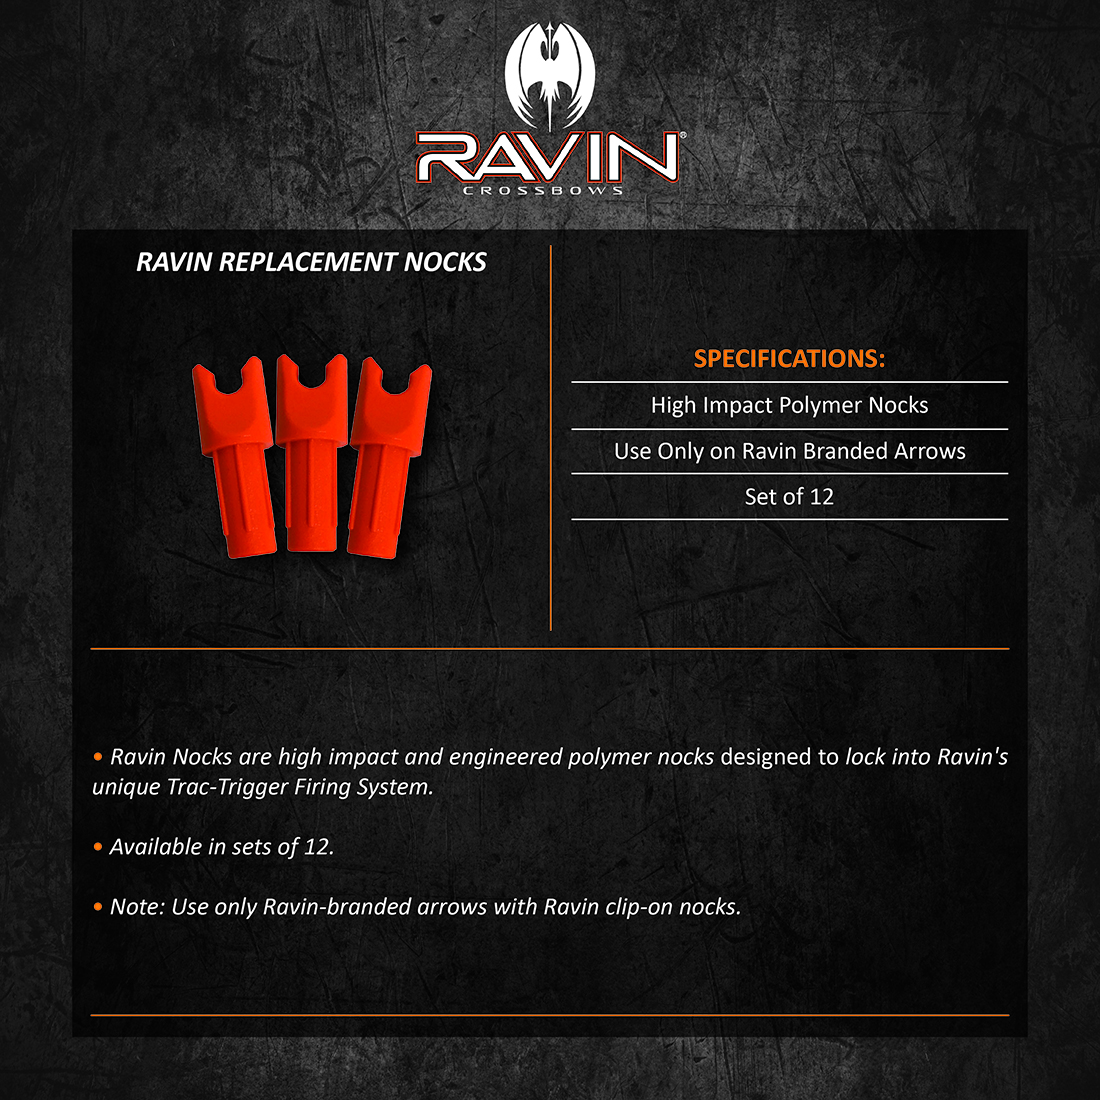 Ravin_Replacement_Nocks_Product_Description